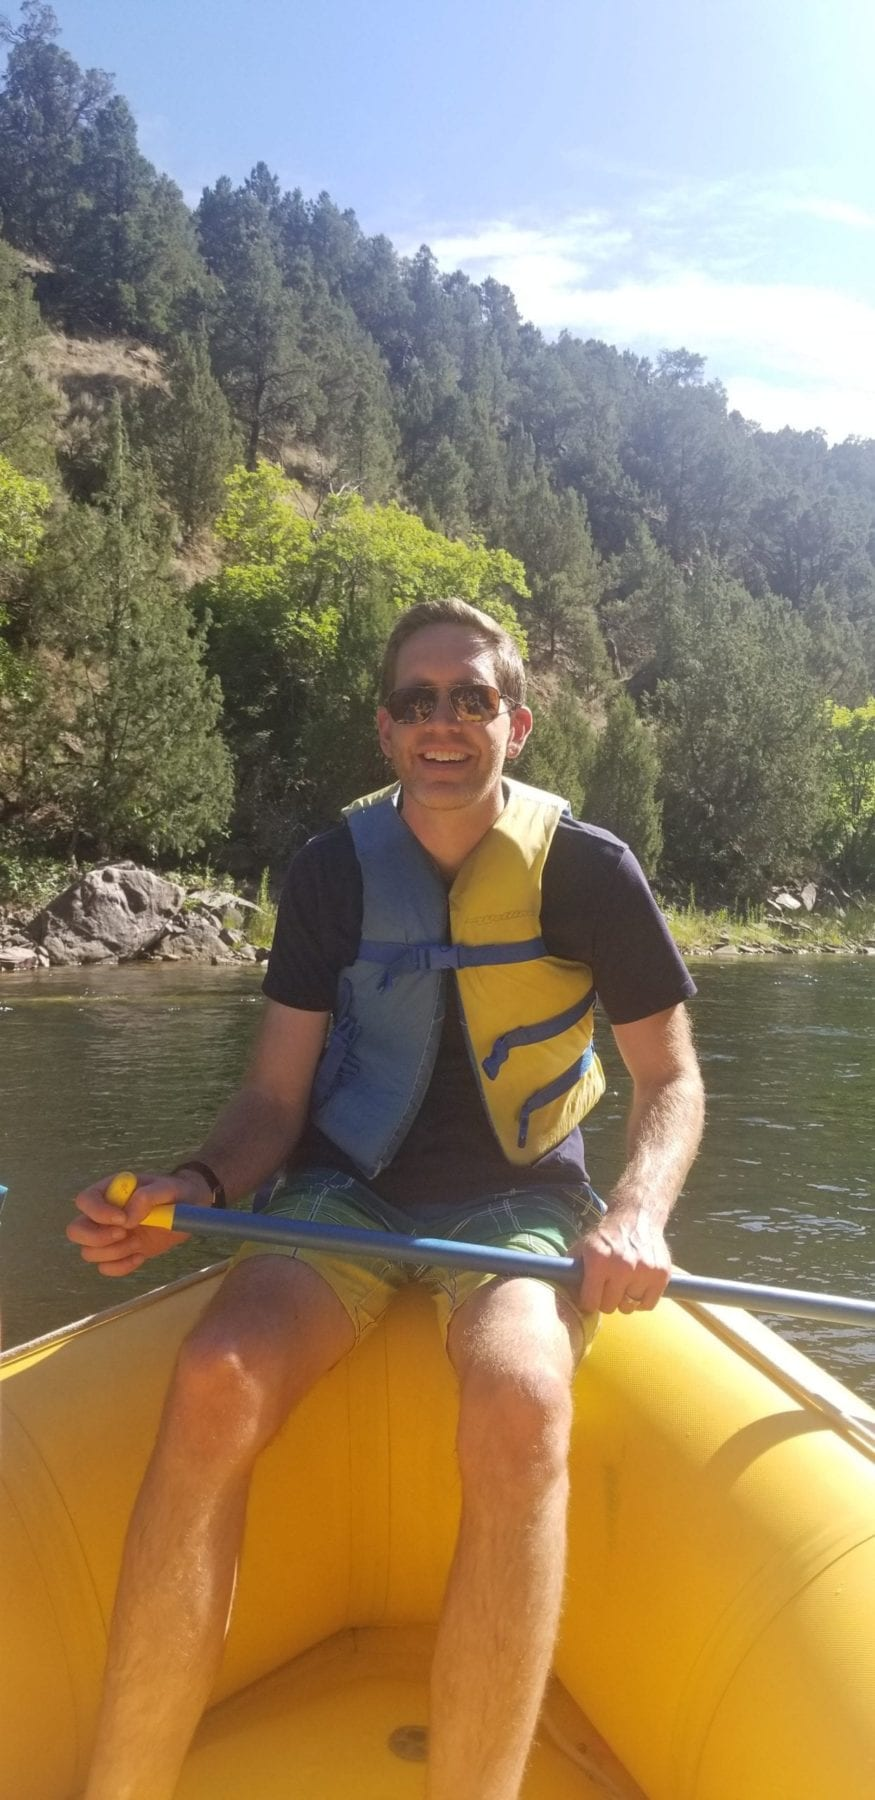 River Rafting on the Green River